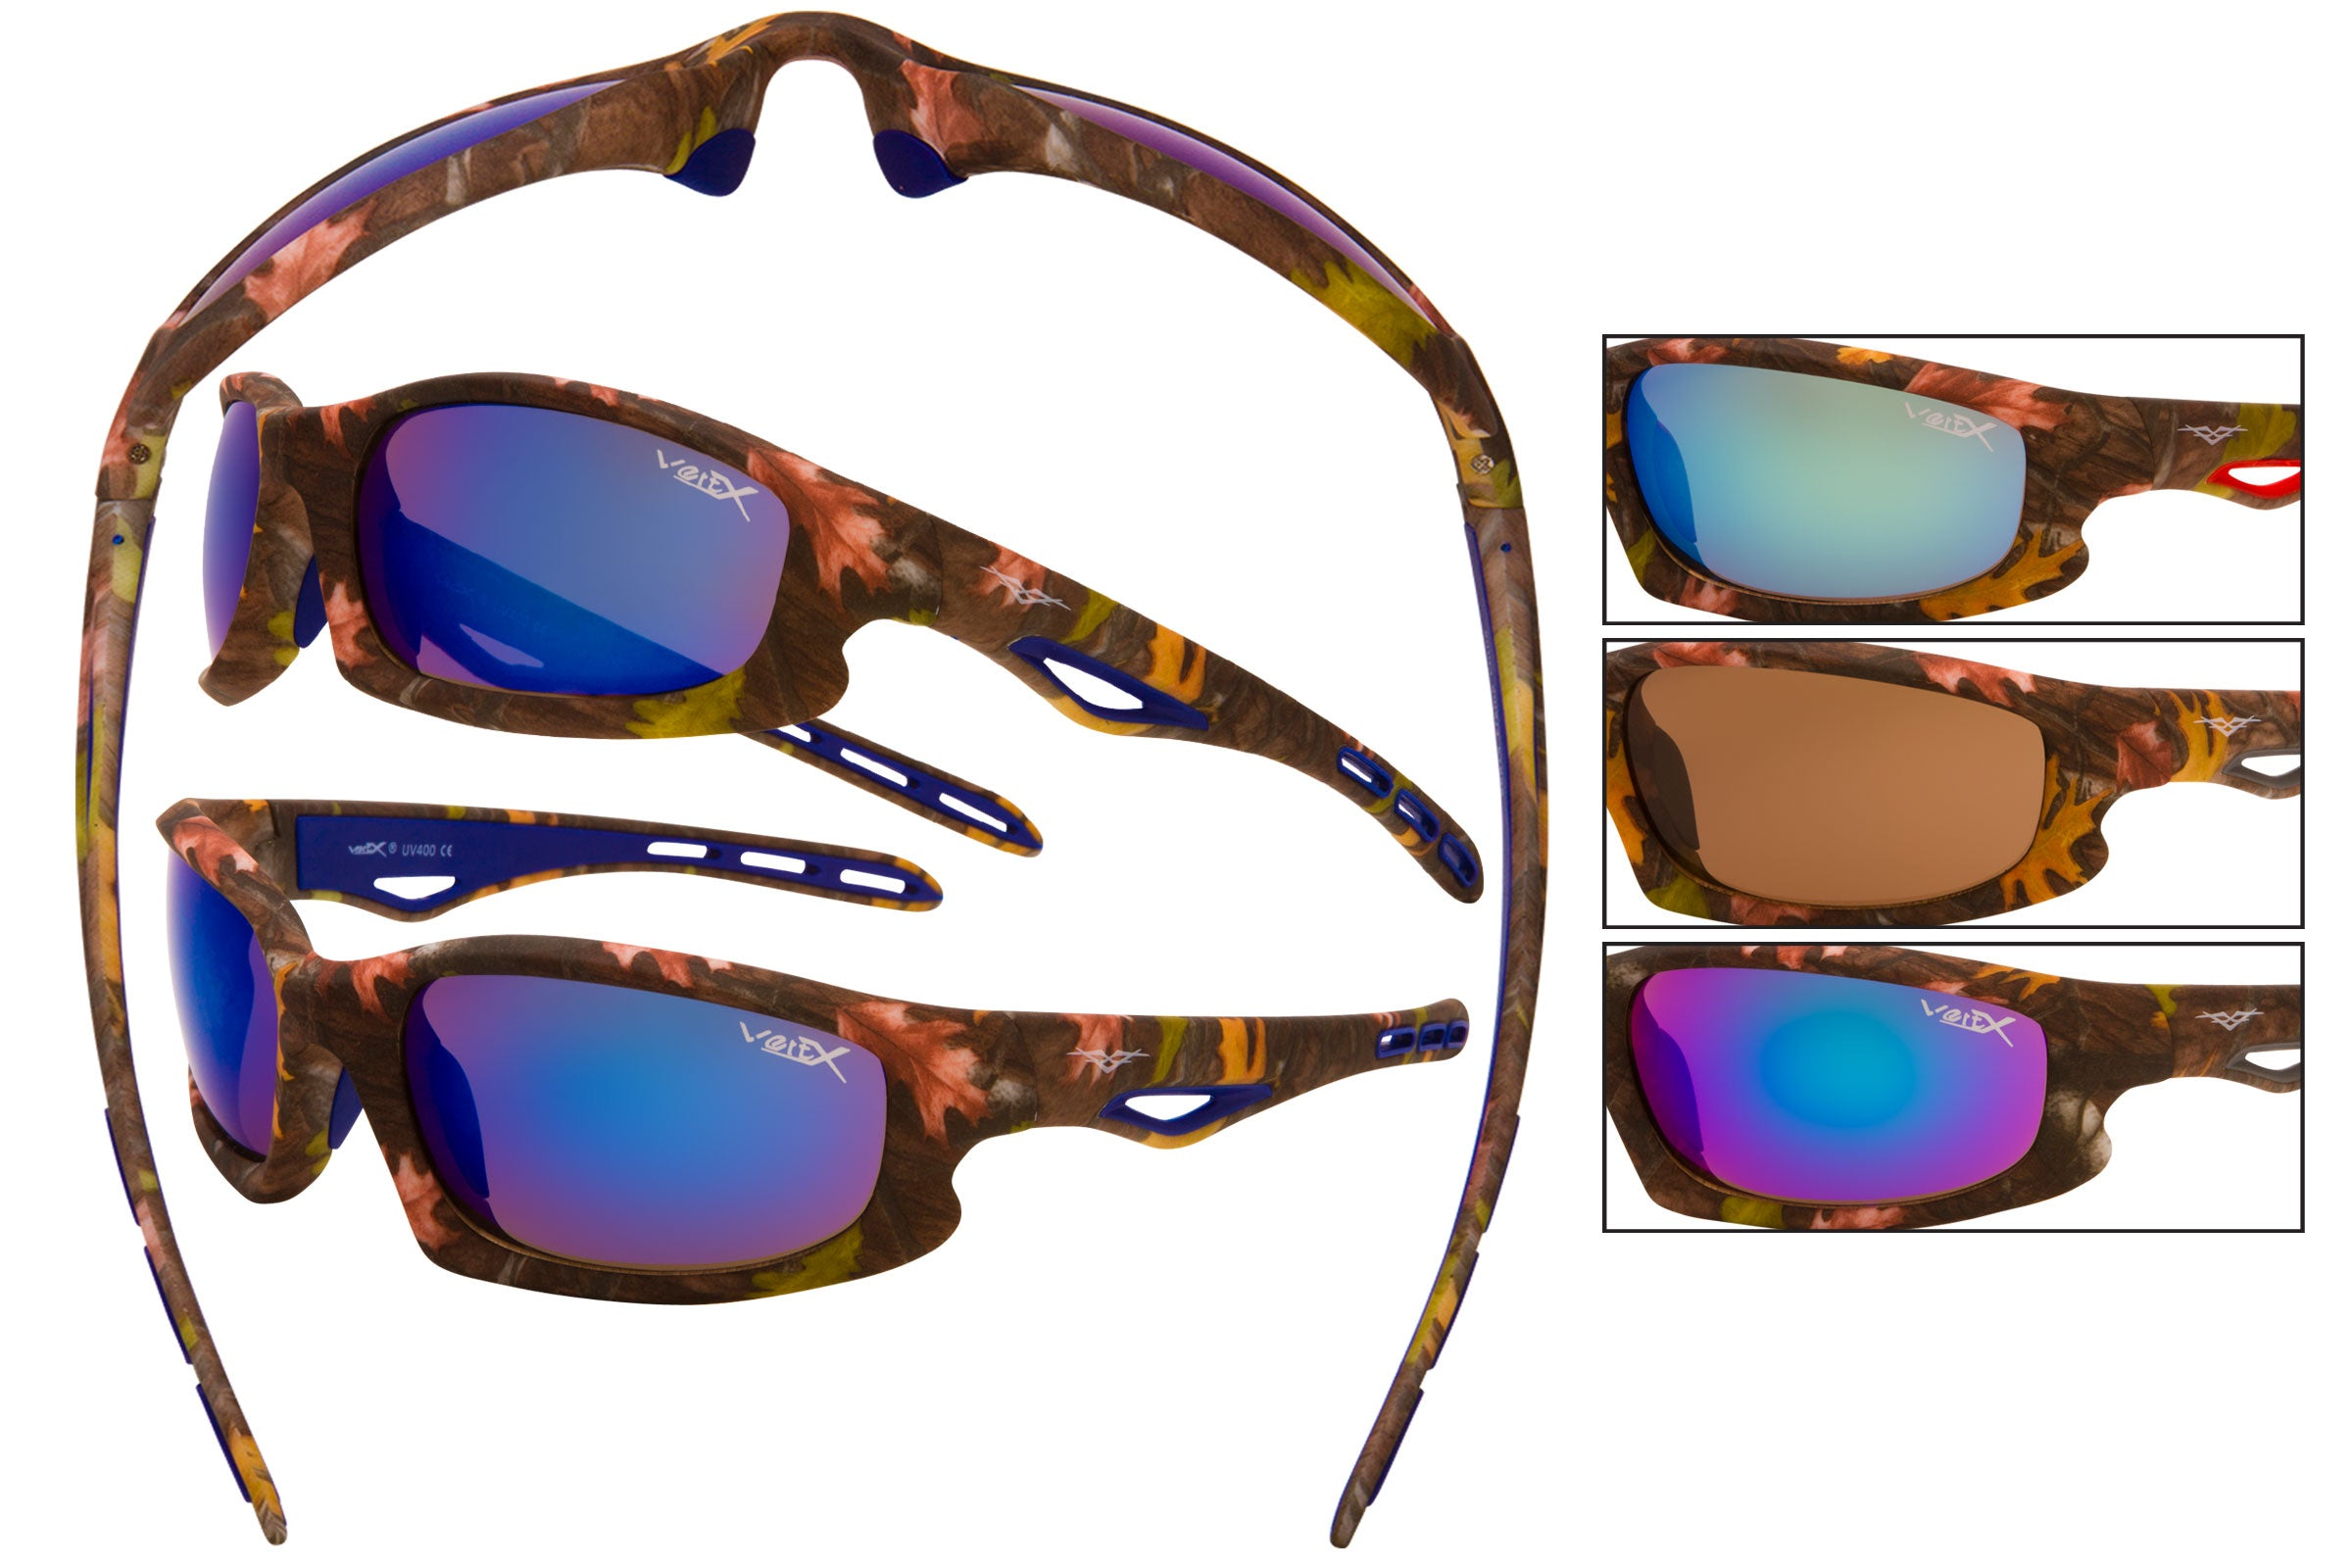 56614 - VertX Brown Camo Sport Wrap Sunglasses